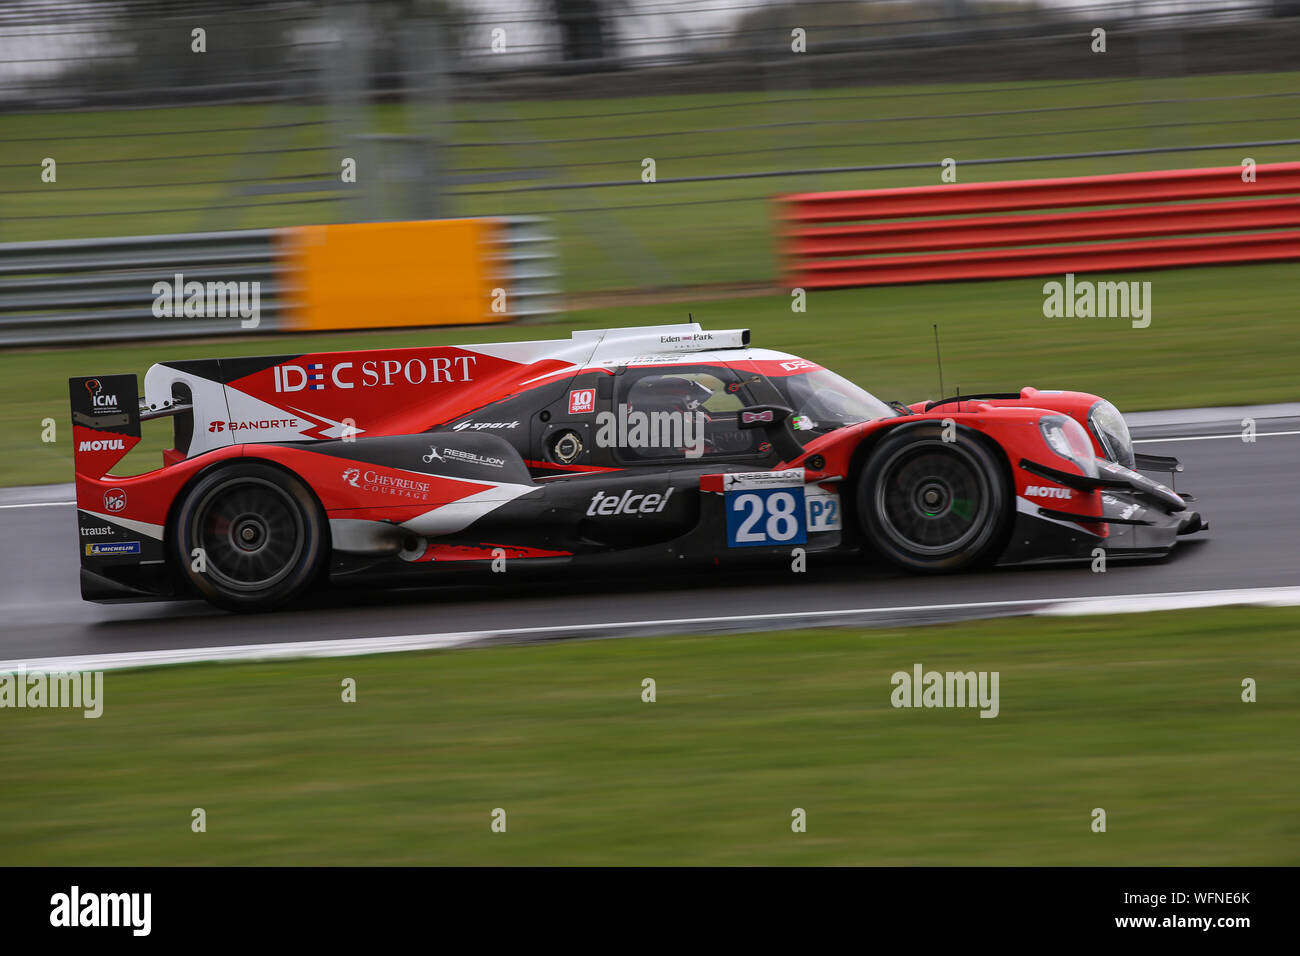 The #28 IDEC Sport Oreca 07-Gibson of Paul Lafargue, Paul Loup Chatin and Memo Rojas during the European Le Mans Series 4 Hours of Silverstone Stock Photo